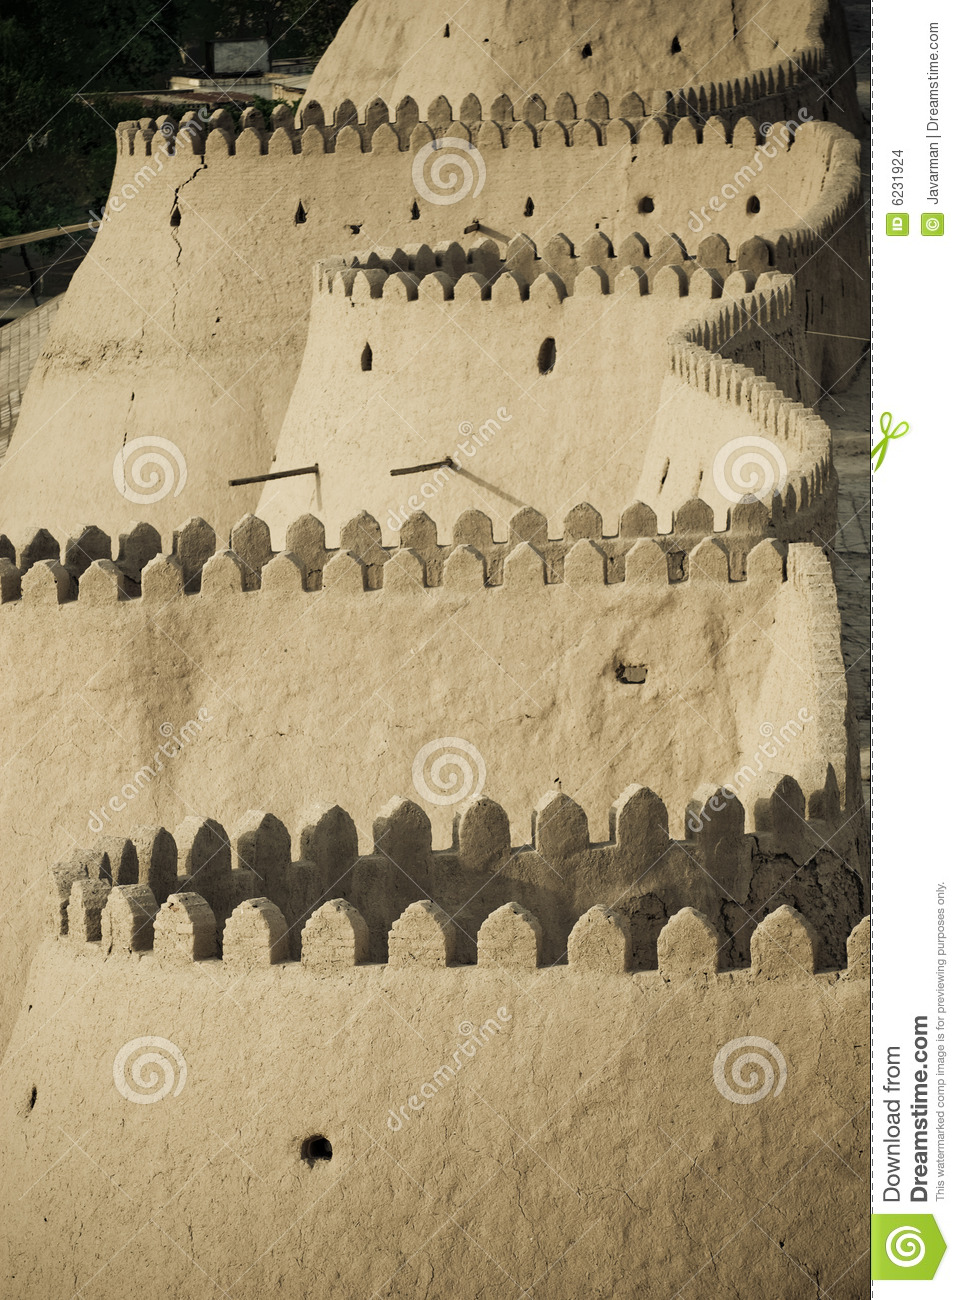 Walls of an ancient city of Khiva